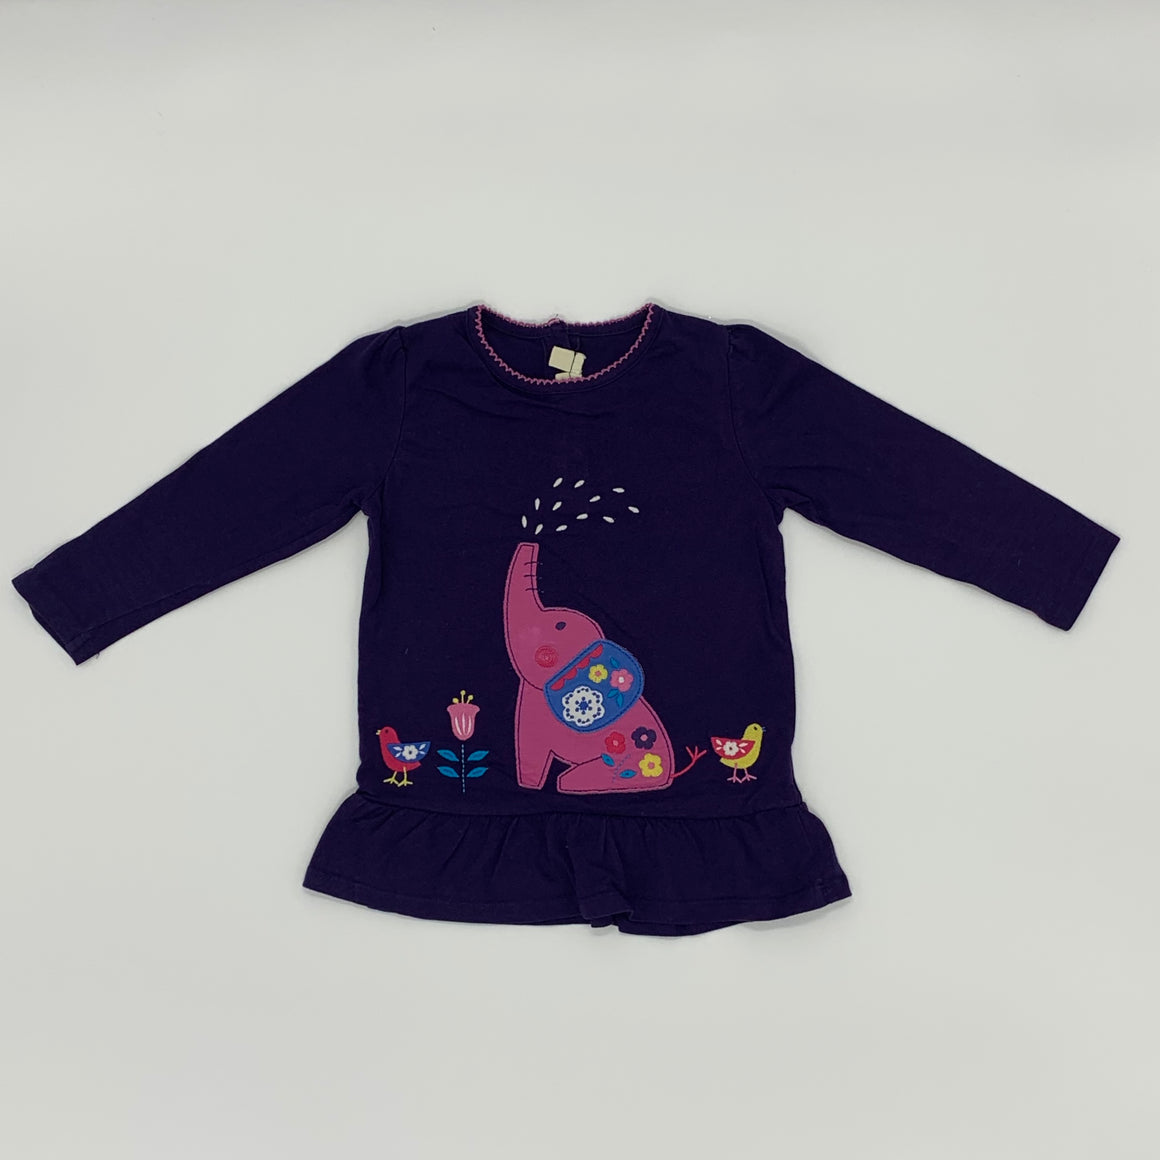 Gently Worn Jojo Maman Babe elephant applique top size 3-4 years